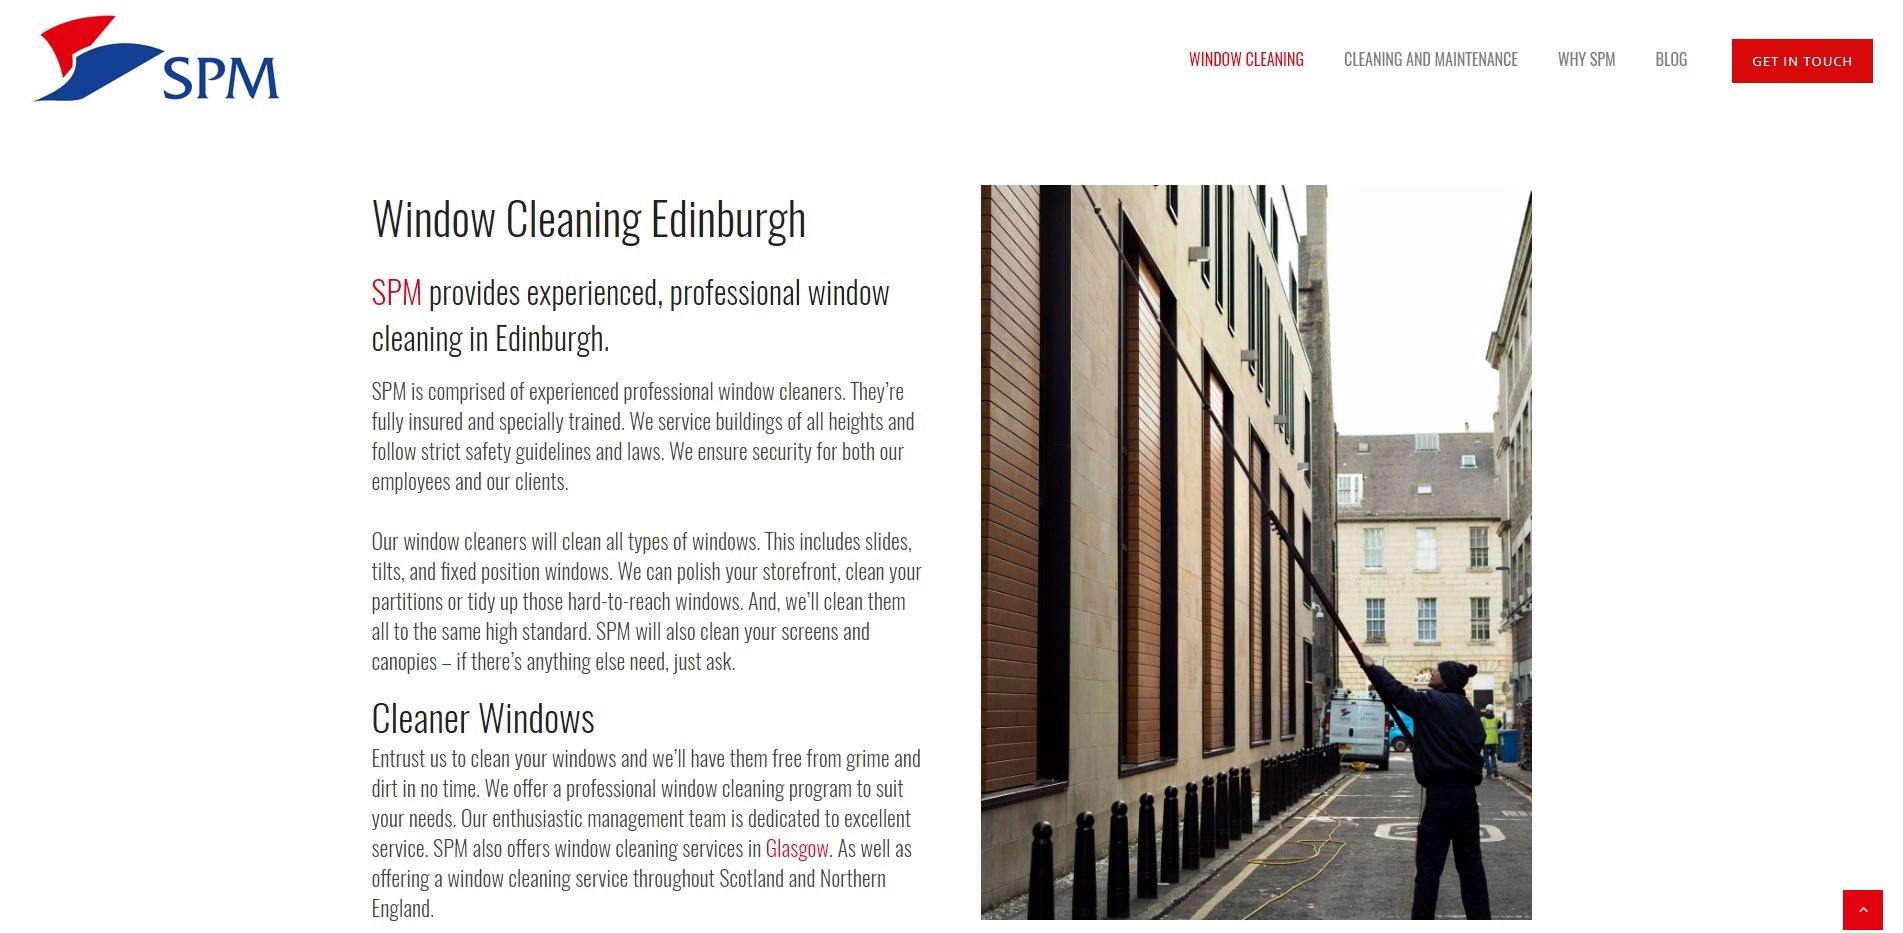 Window-Cleaning-Edinburgh-National-Window-Cleaning-with-SPM